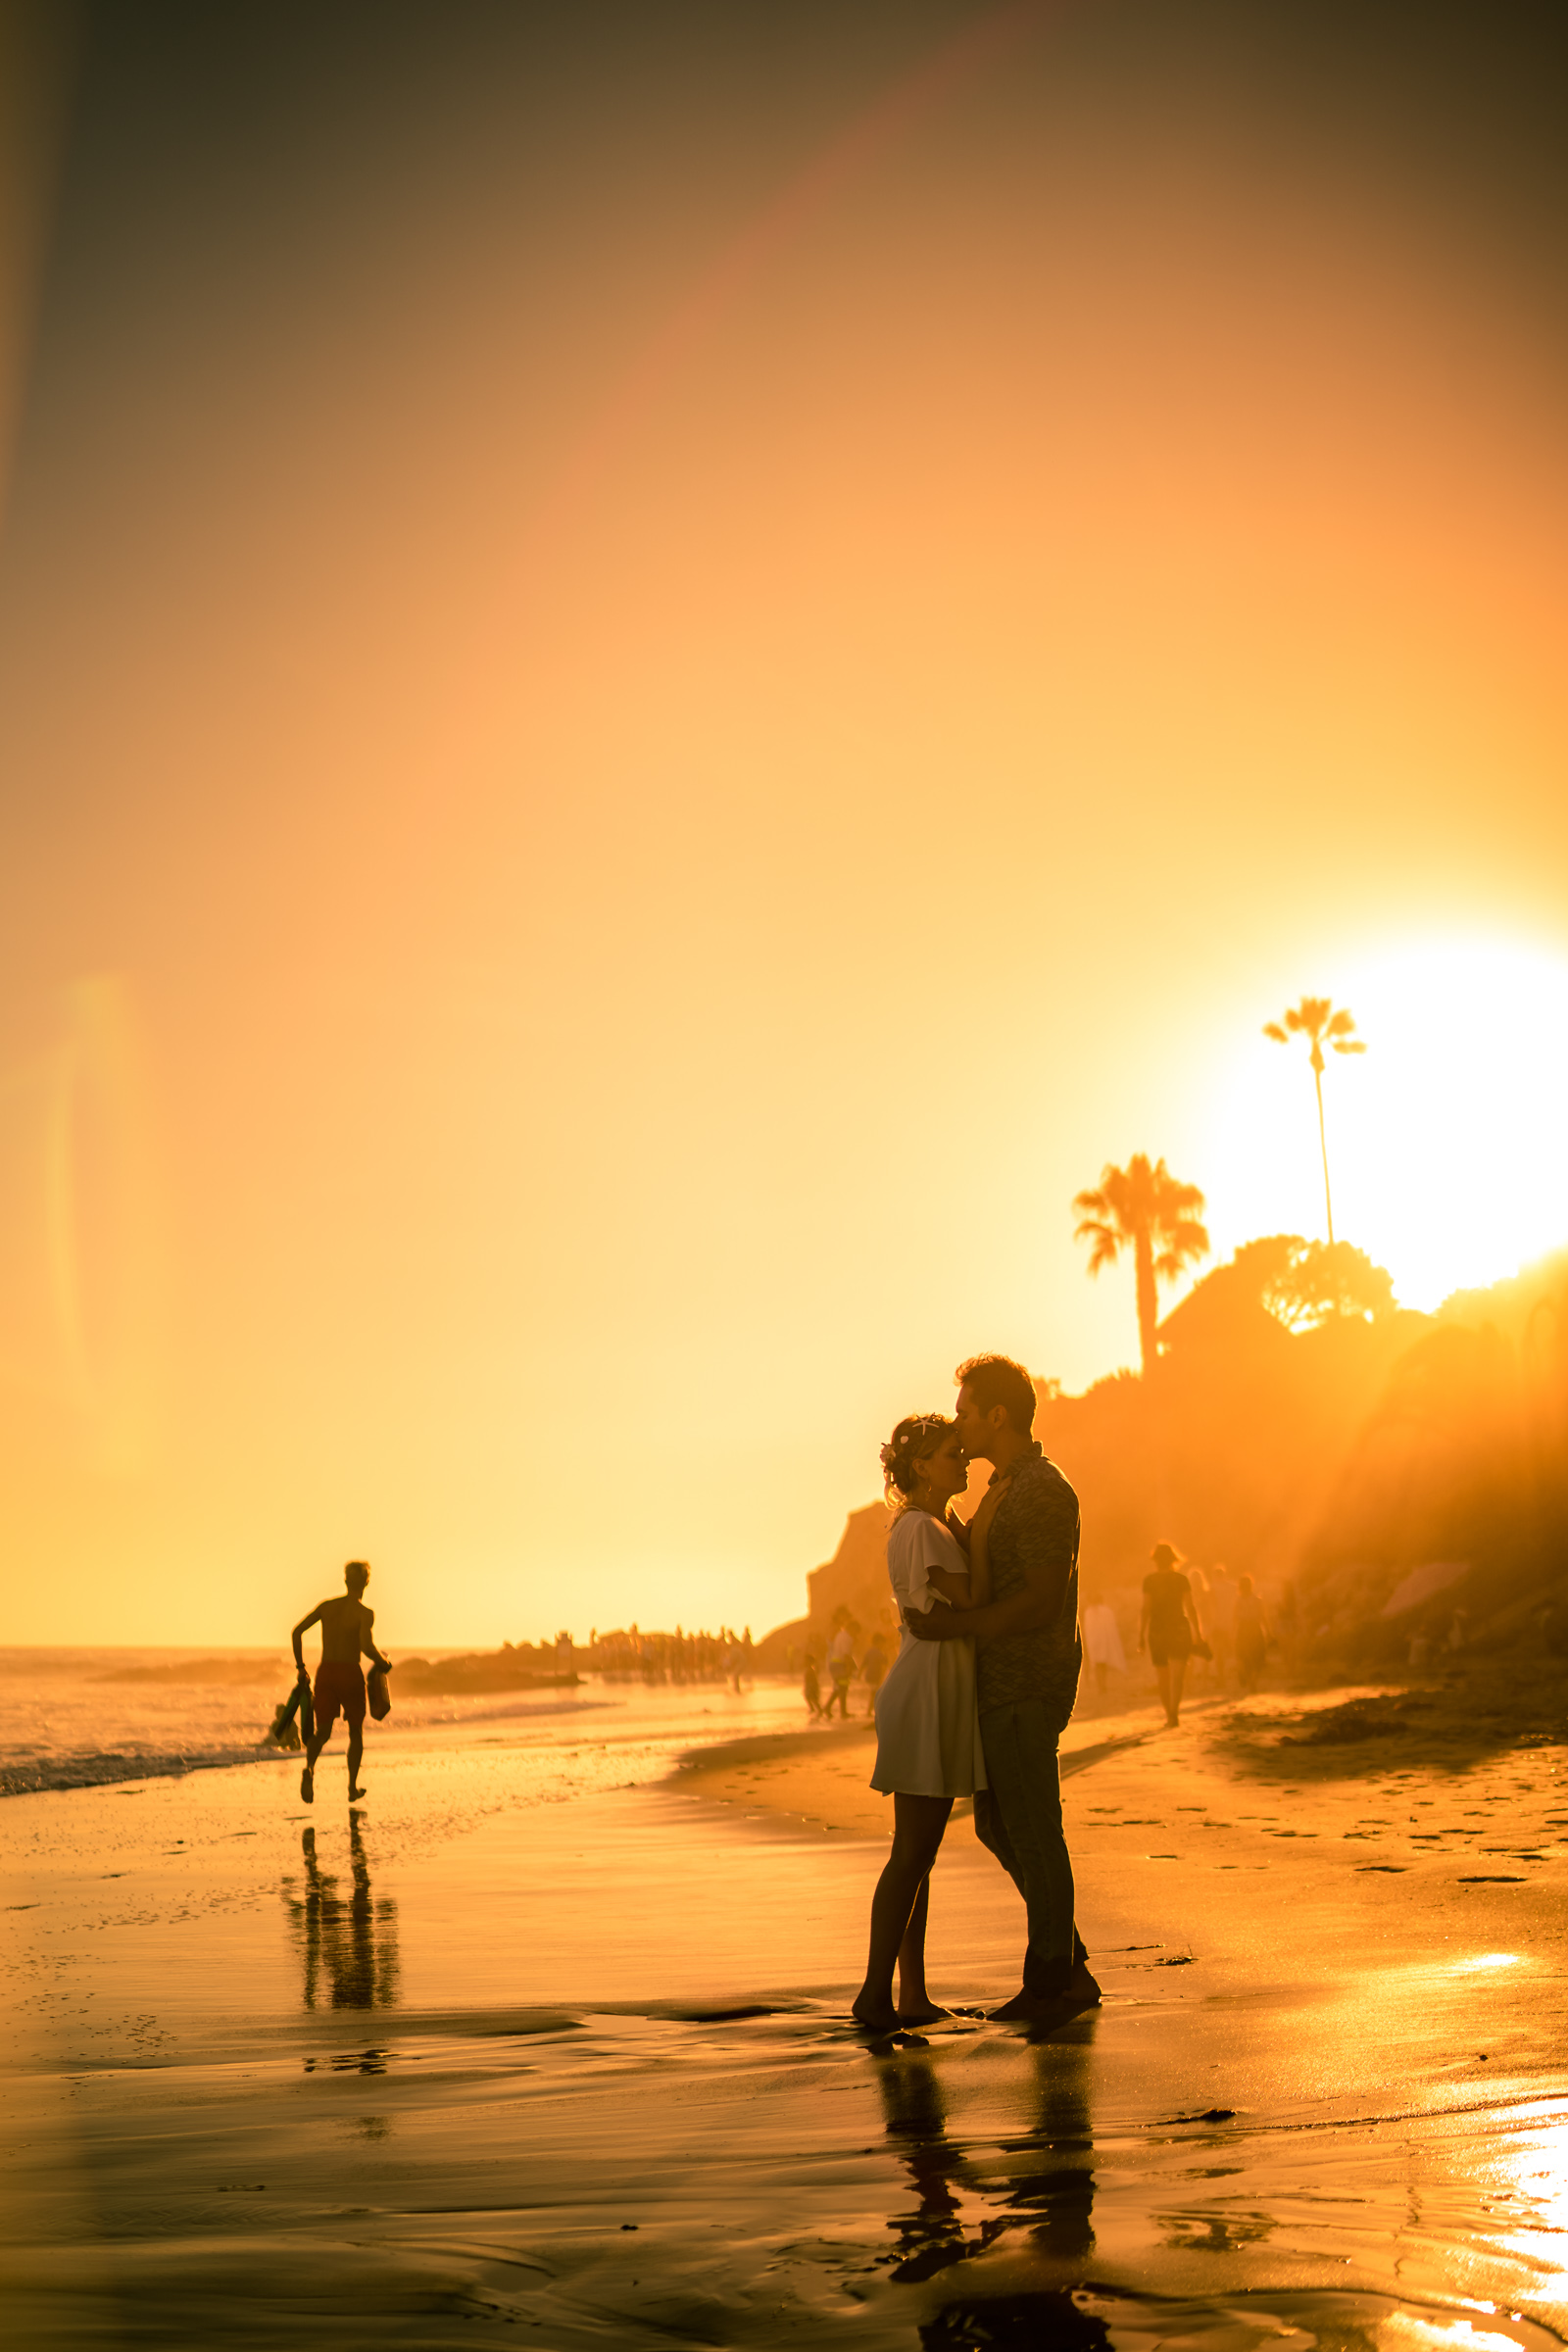 21__Bruno-Amanda-Laguna-beach-engagement_Joseph-Barber-Weddings_2913.jpg